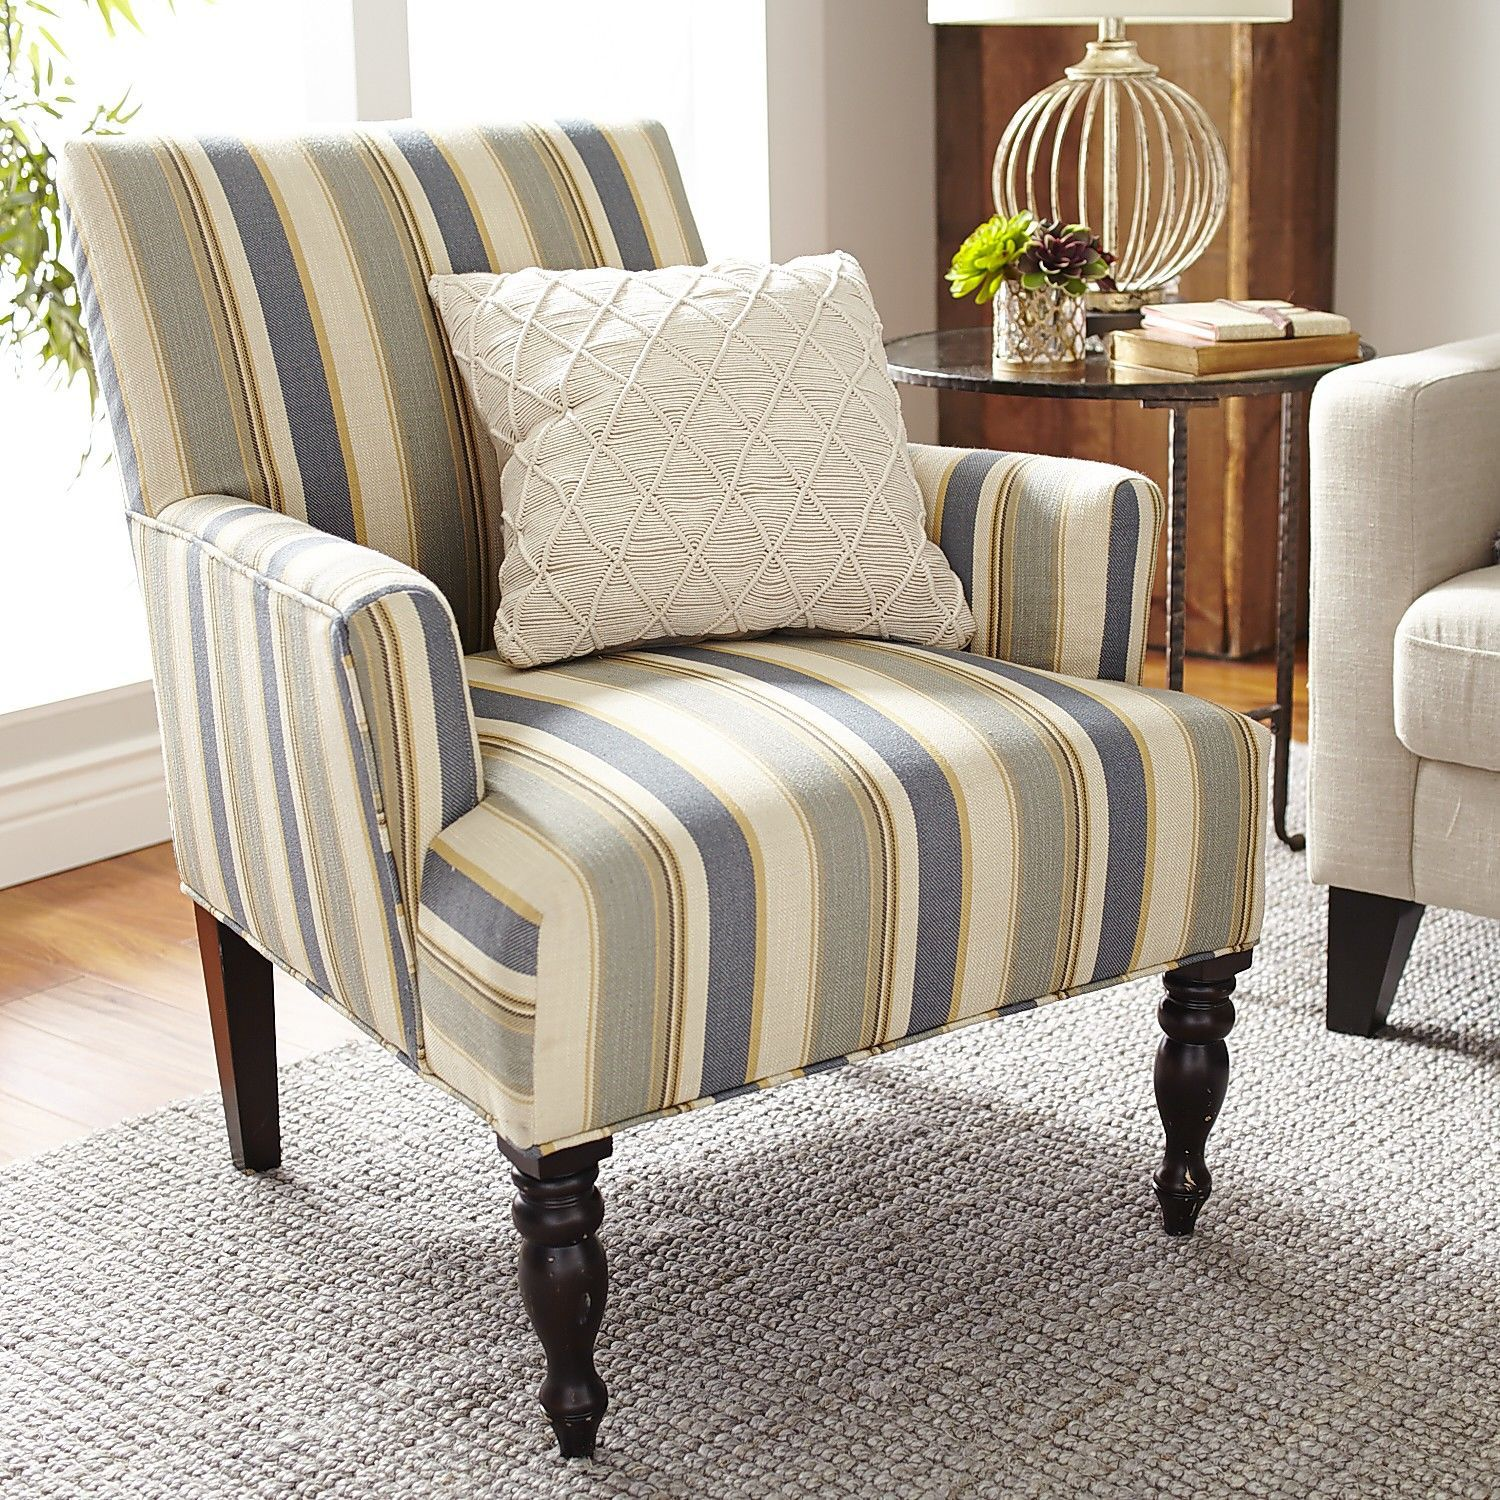 Liliana Surf Blue Striped Armchair | Armchairs, Surf and Bald hairstyles